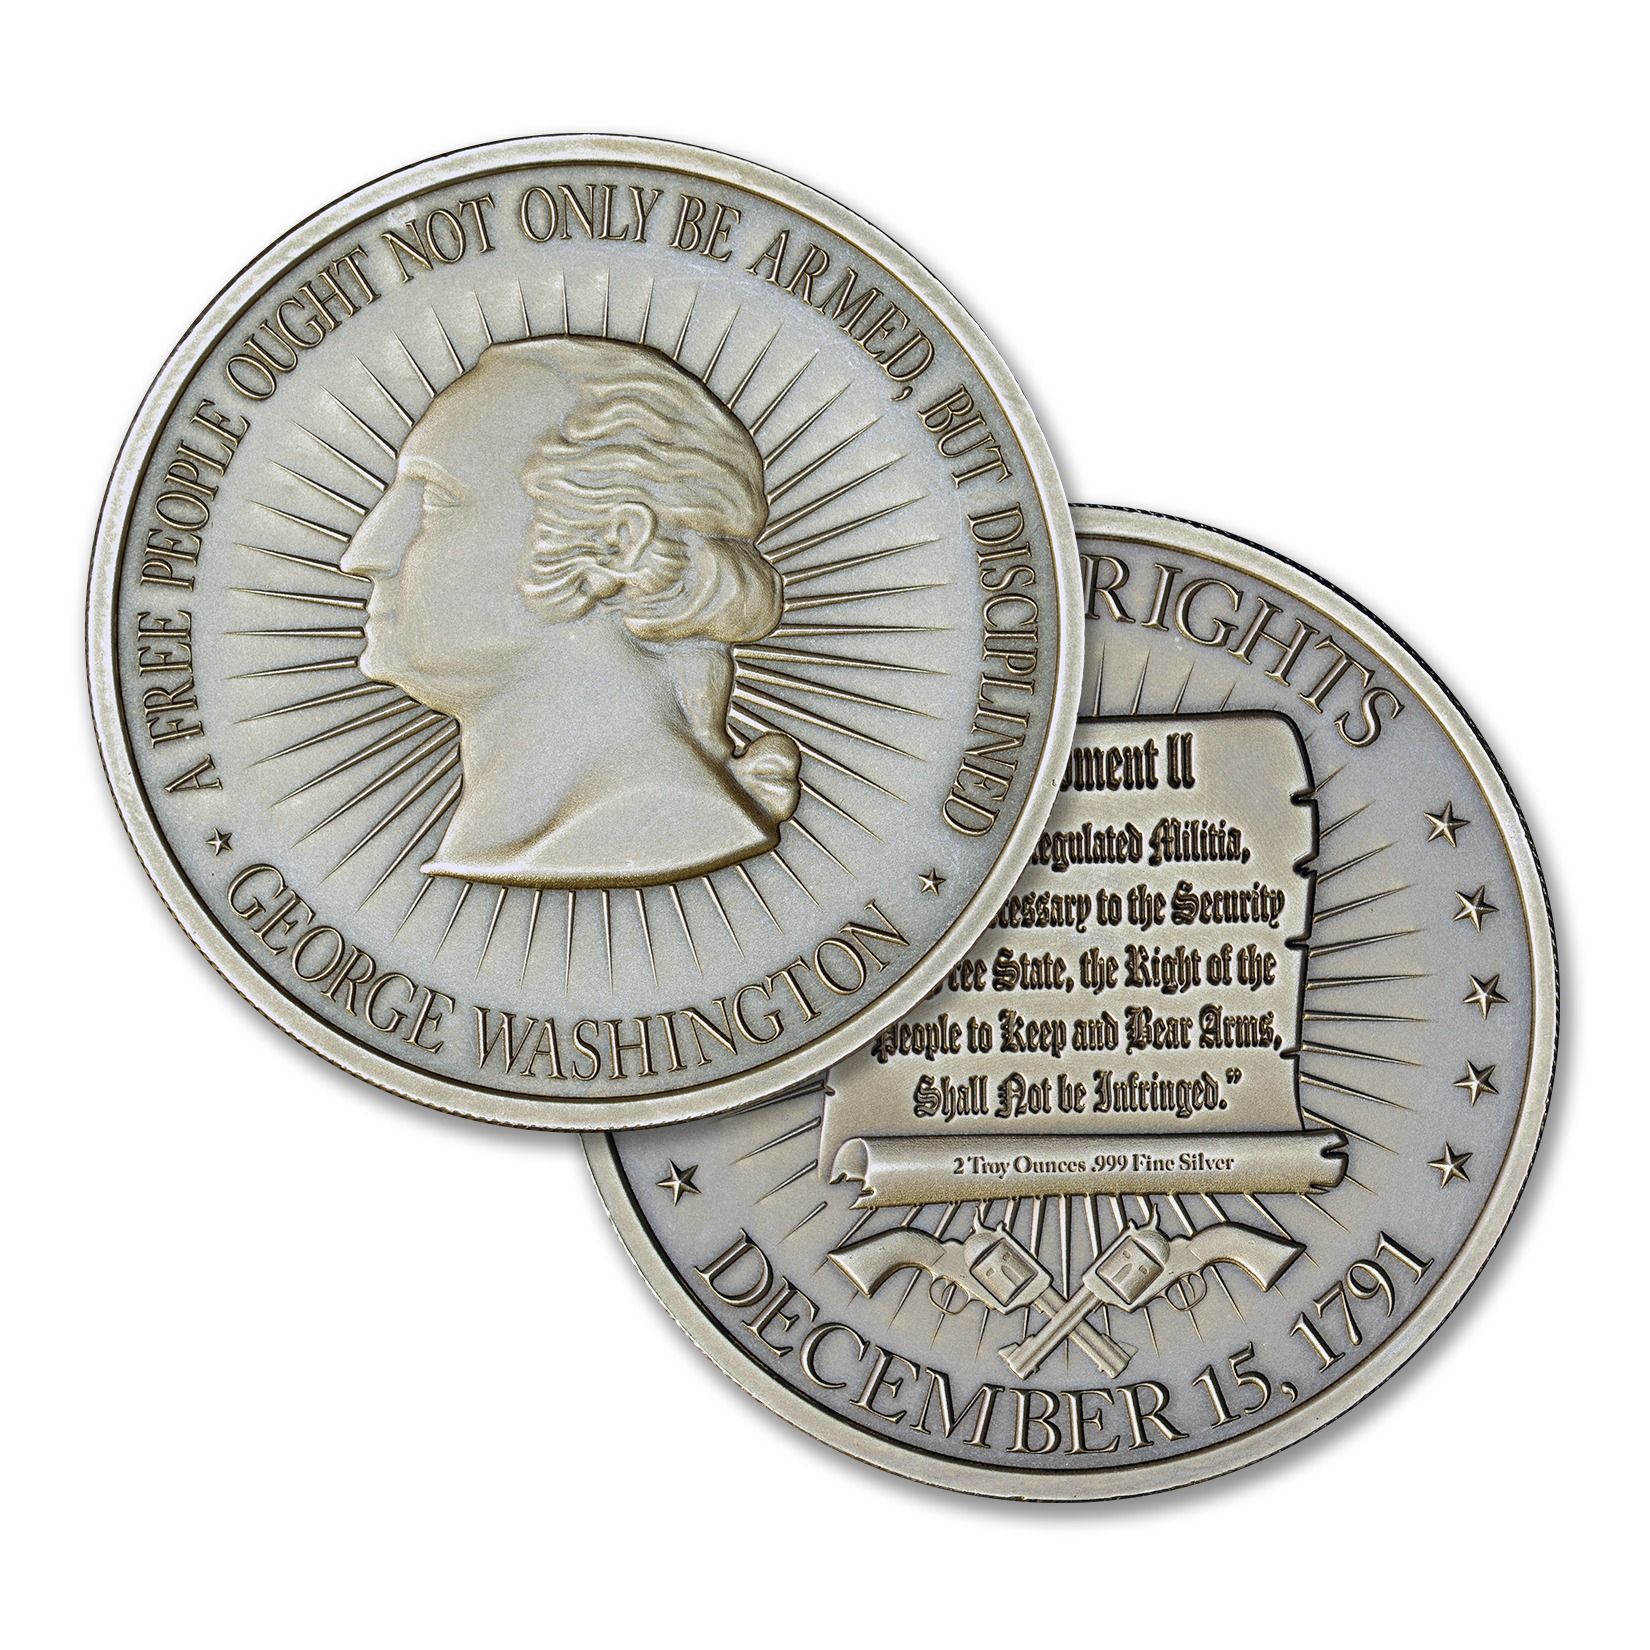 WASHINGTON BUST / BILL OF RIGHTS 2A – 2 TROY OUNCE – 50MM (ANTIQUED)